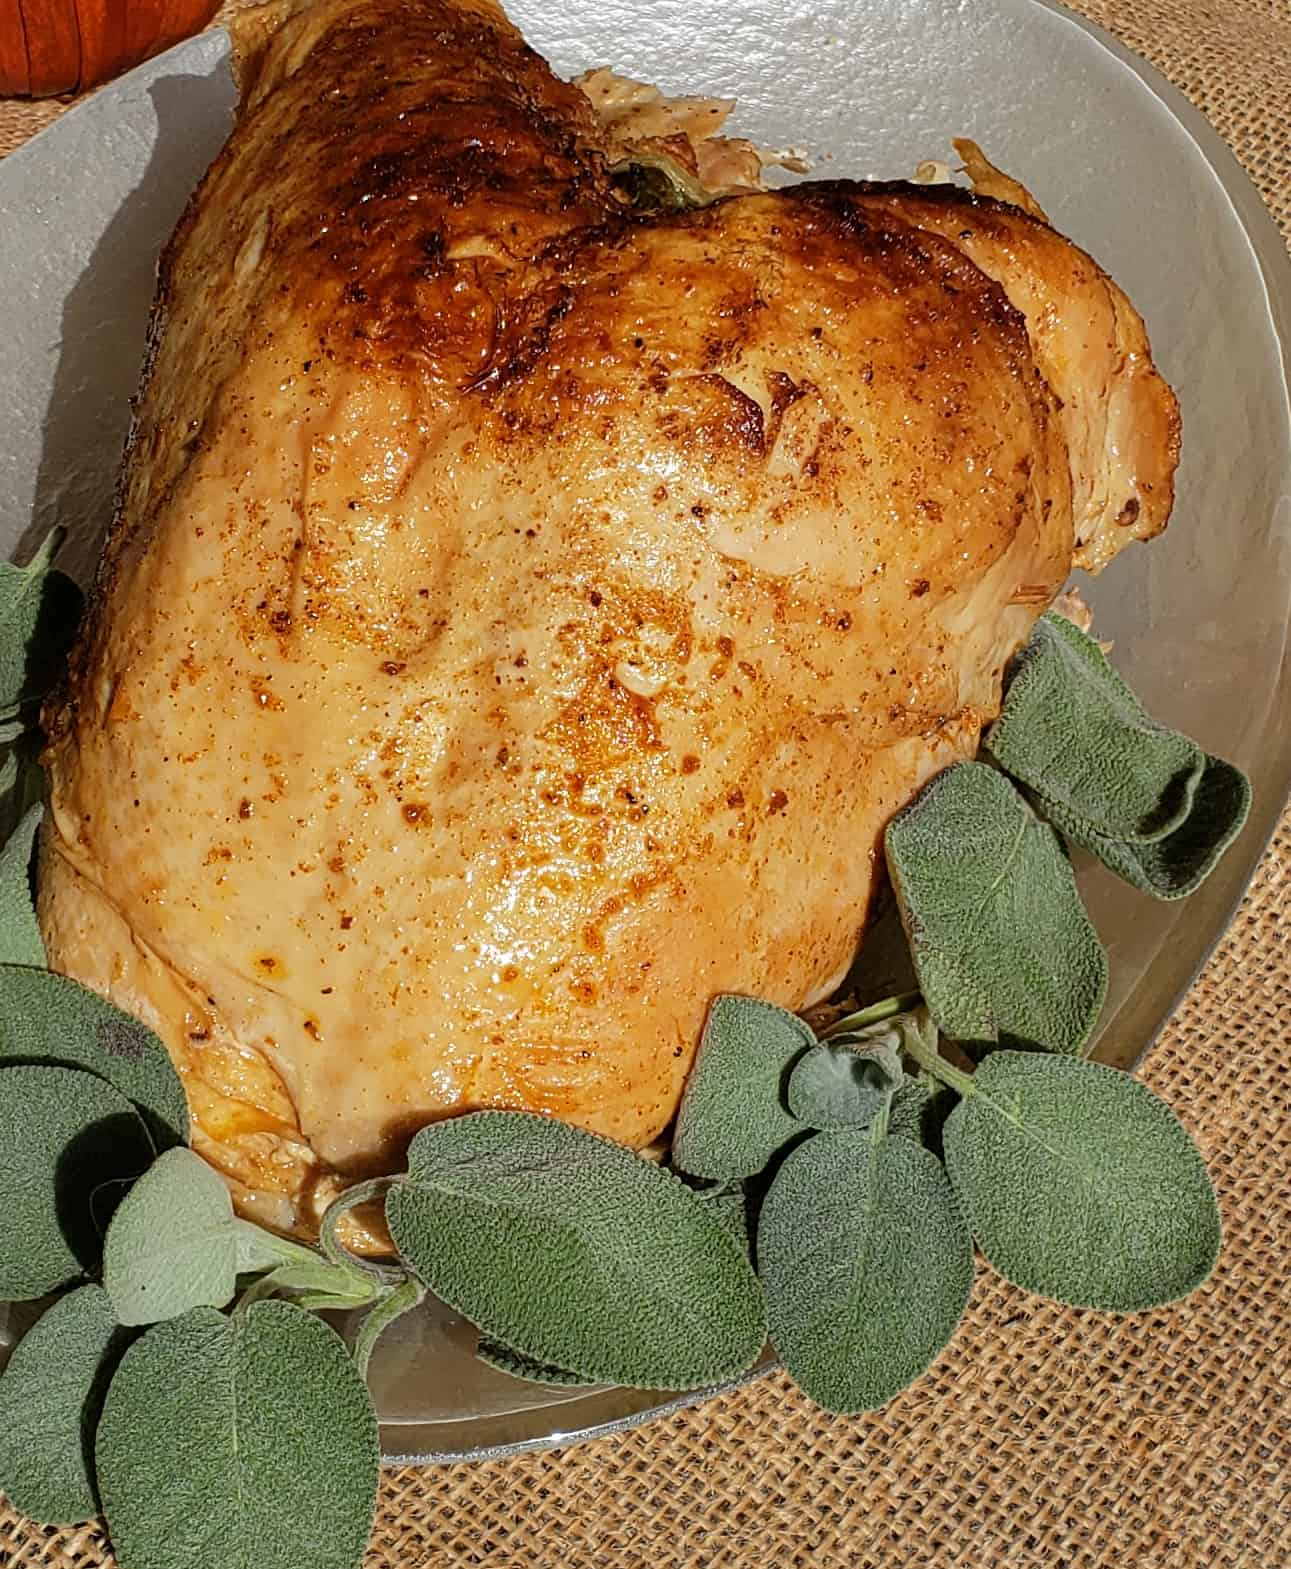 Turkey Breast cooked in Instant Pot on a glass platter with sage garnish